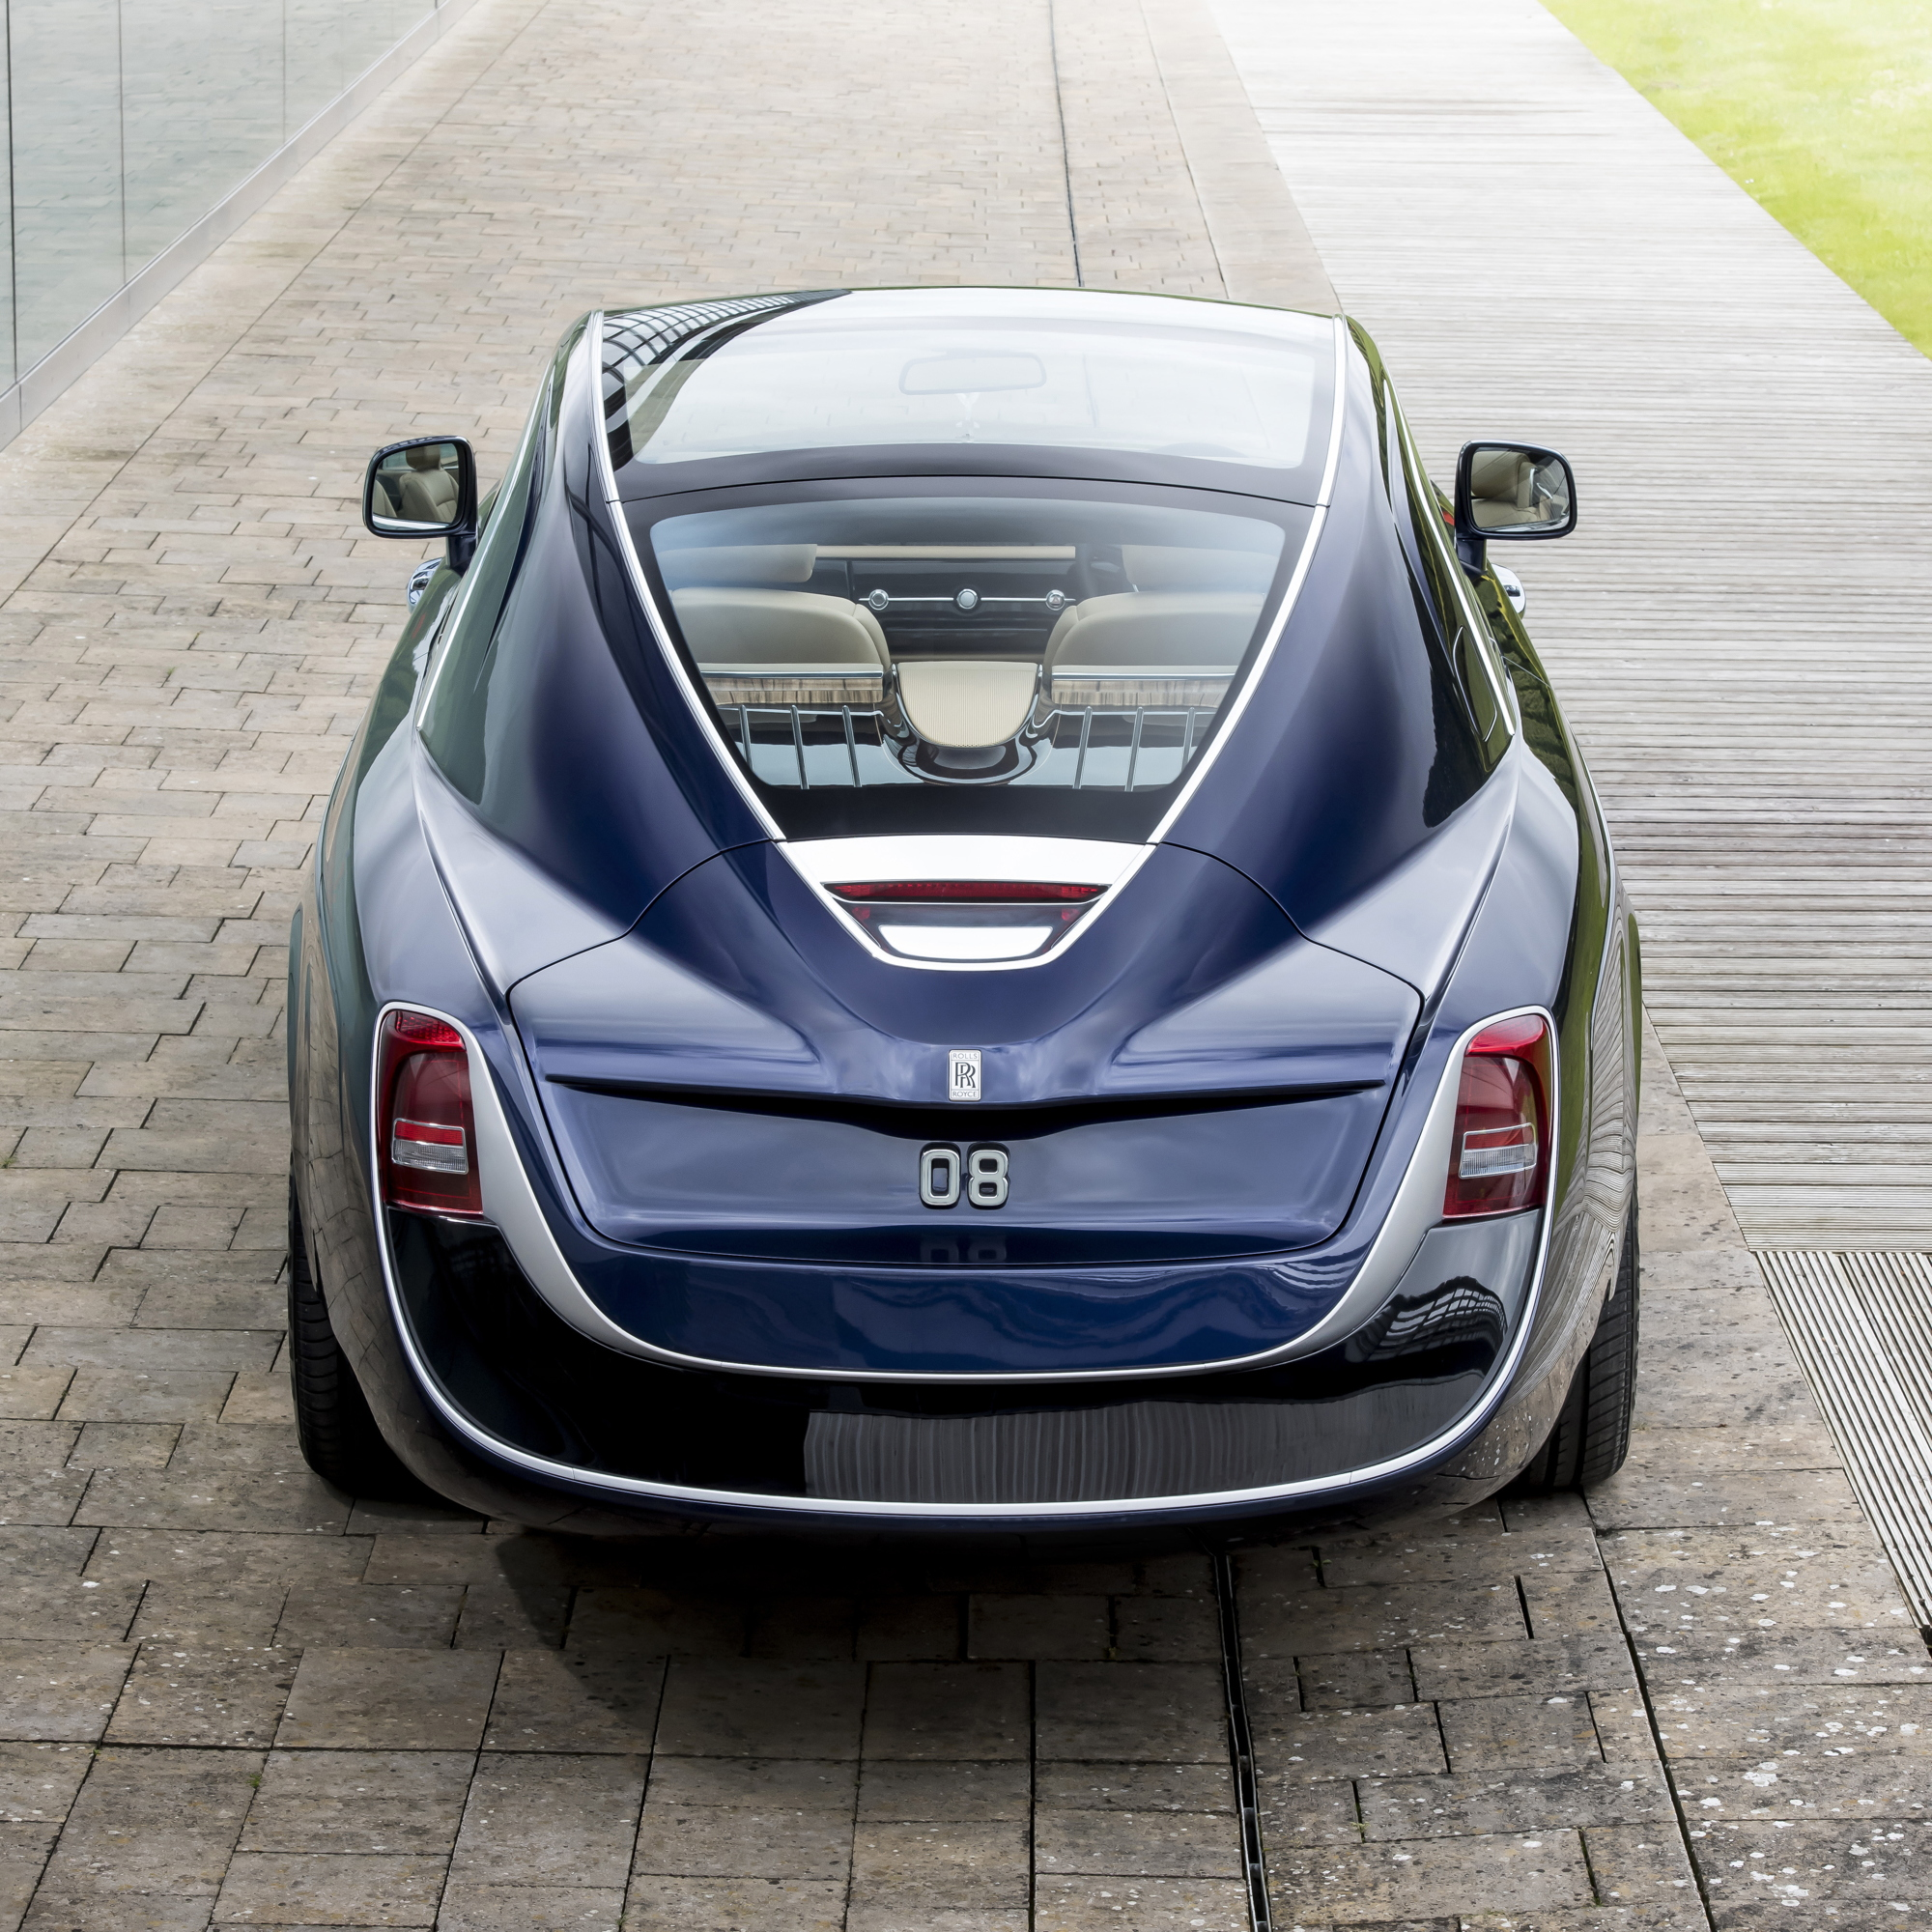 Rolls-Royce Sweptail rear